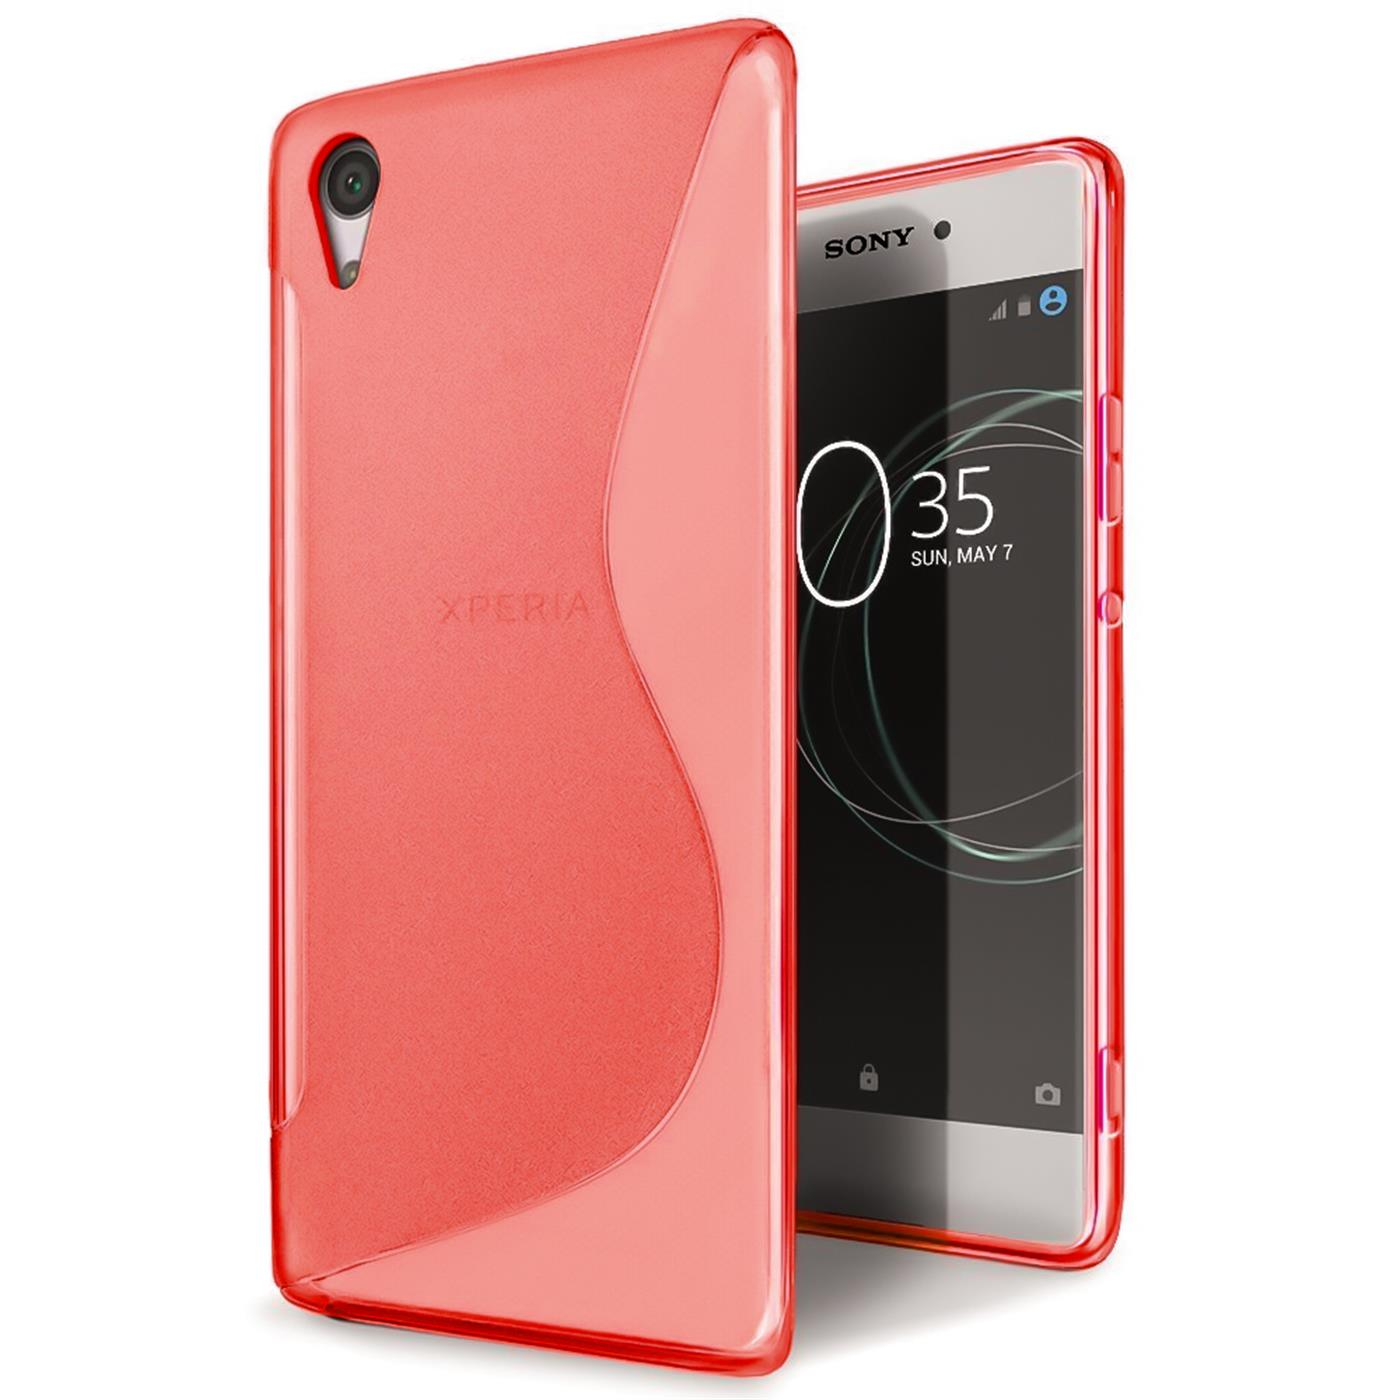 cheap for discount 5be41 7f624 Details about Case SONY XPERIA M Case Slicone Cover Case Bumper